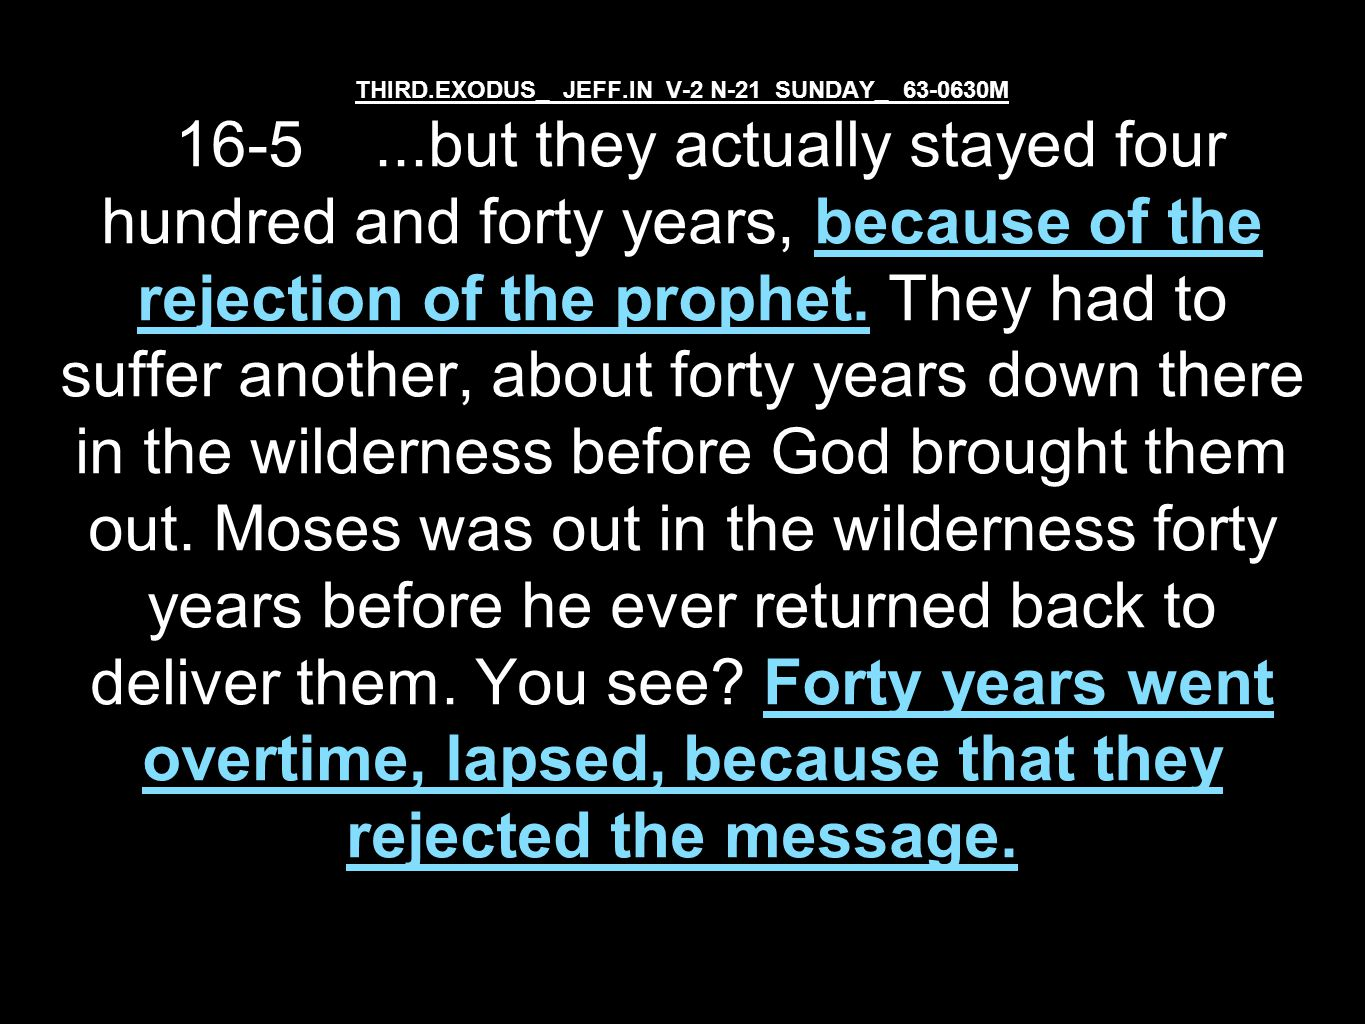 THIRD.EXODUS_ JEFF.IN V-2 N-21 SUNDAY_ 63-0630M 16-5...but they actually stayed four hundred and forty years, because of the rejection of the prophet.